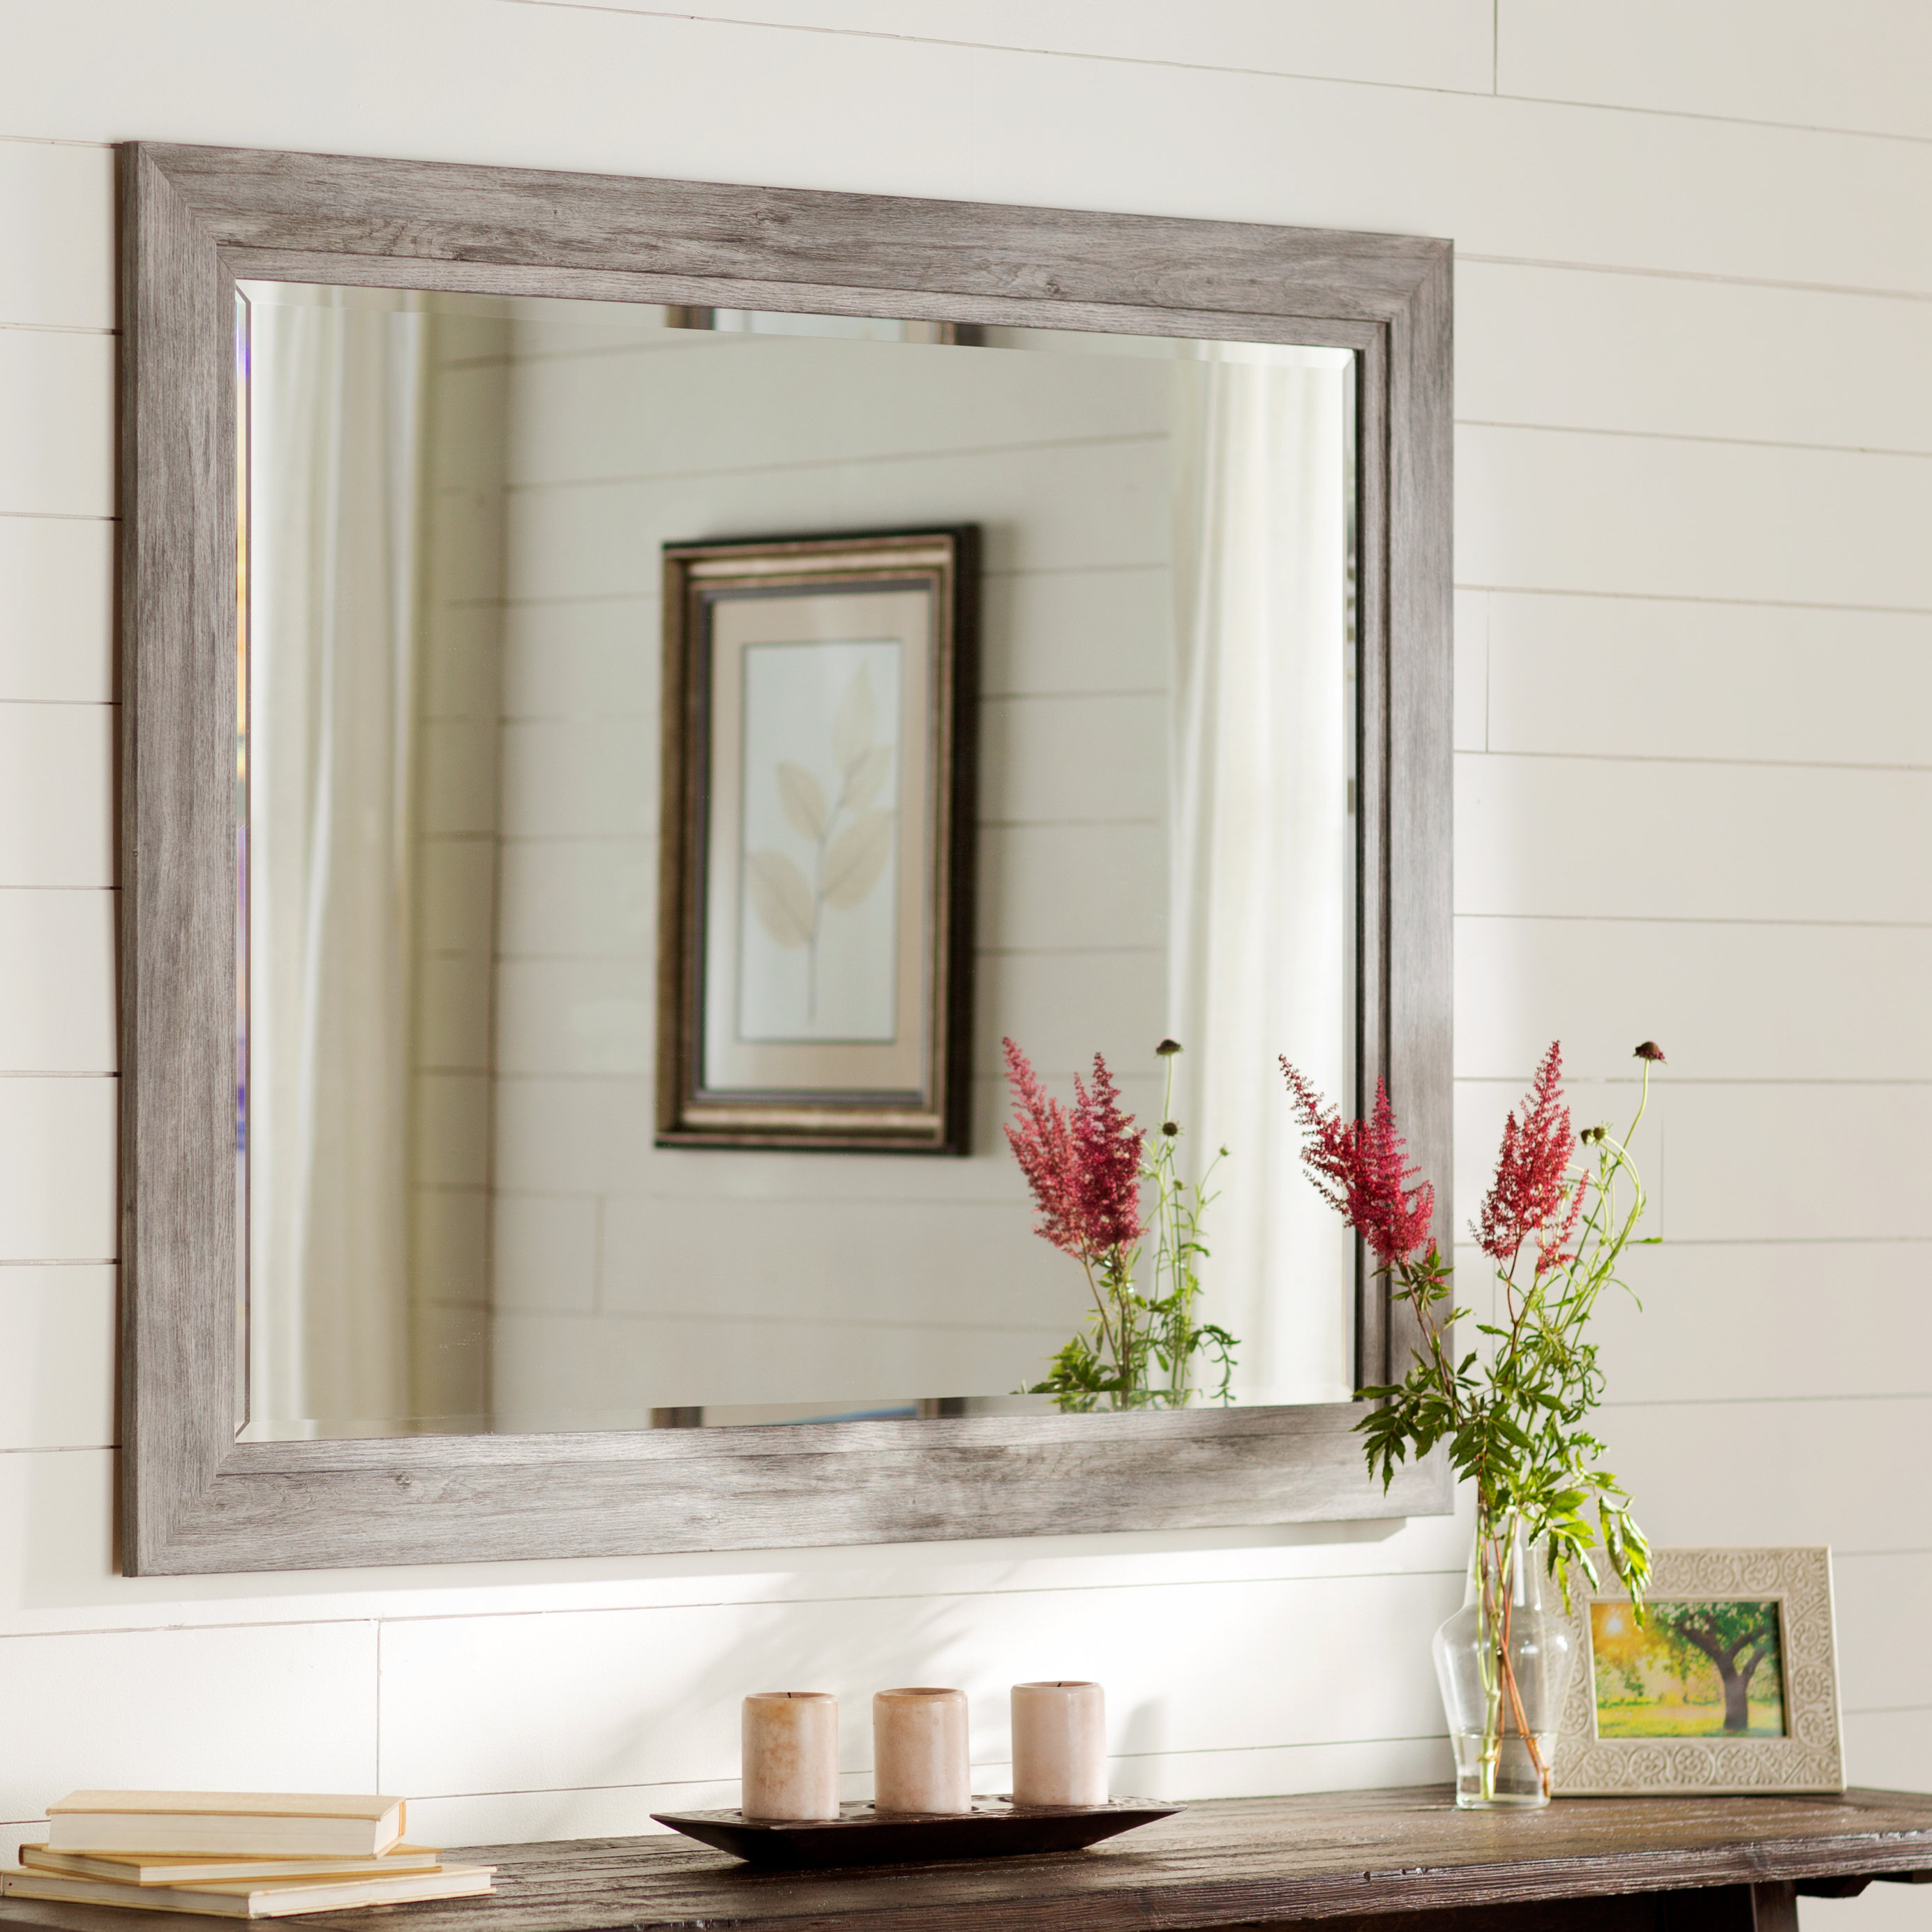 Traditional Beveled Accent Mirror with Longwood Rustic Beveled Accent Mirrors (Image 23 of 30)